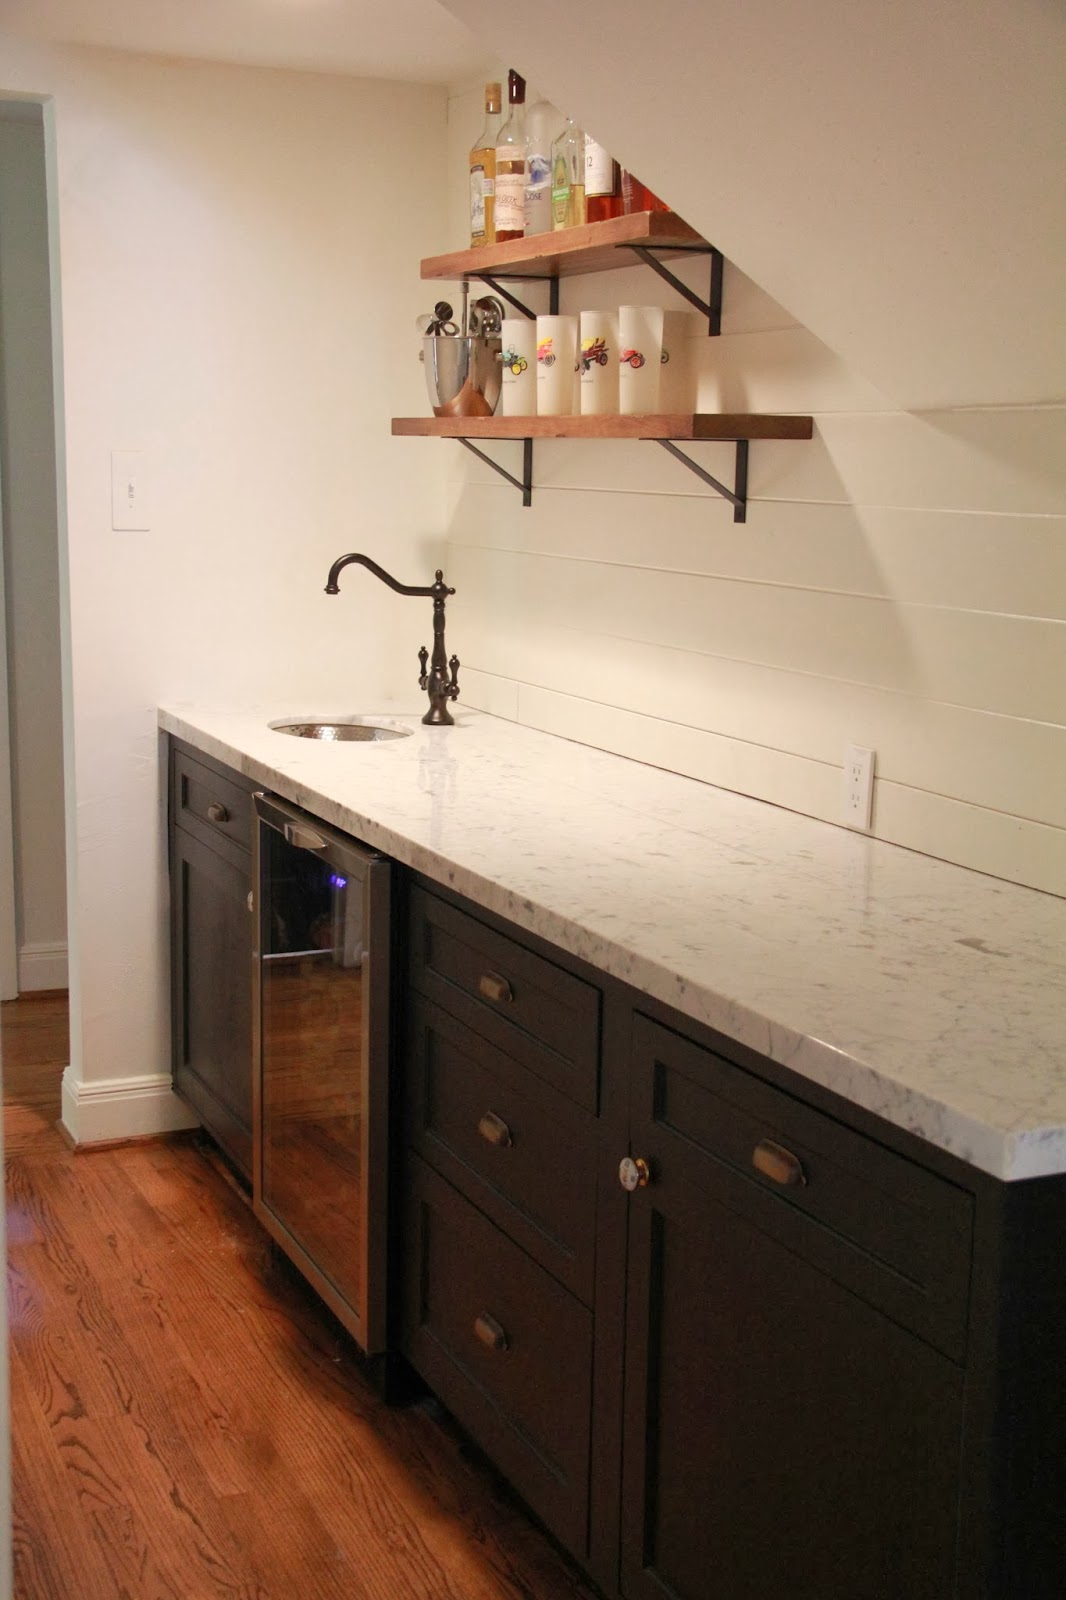 in case you missed it this is the before wet bar post